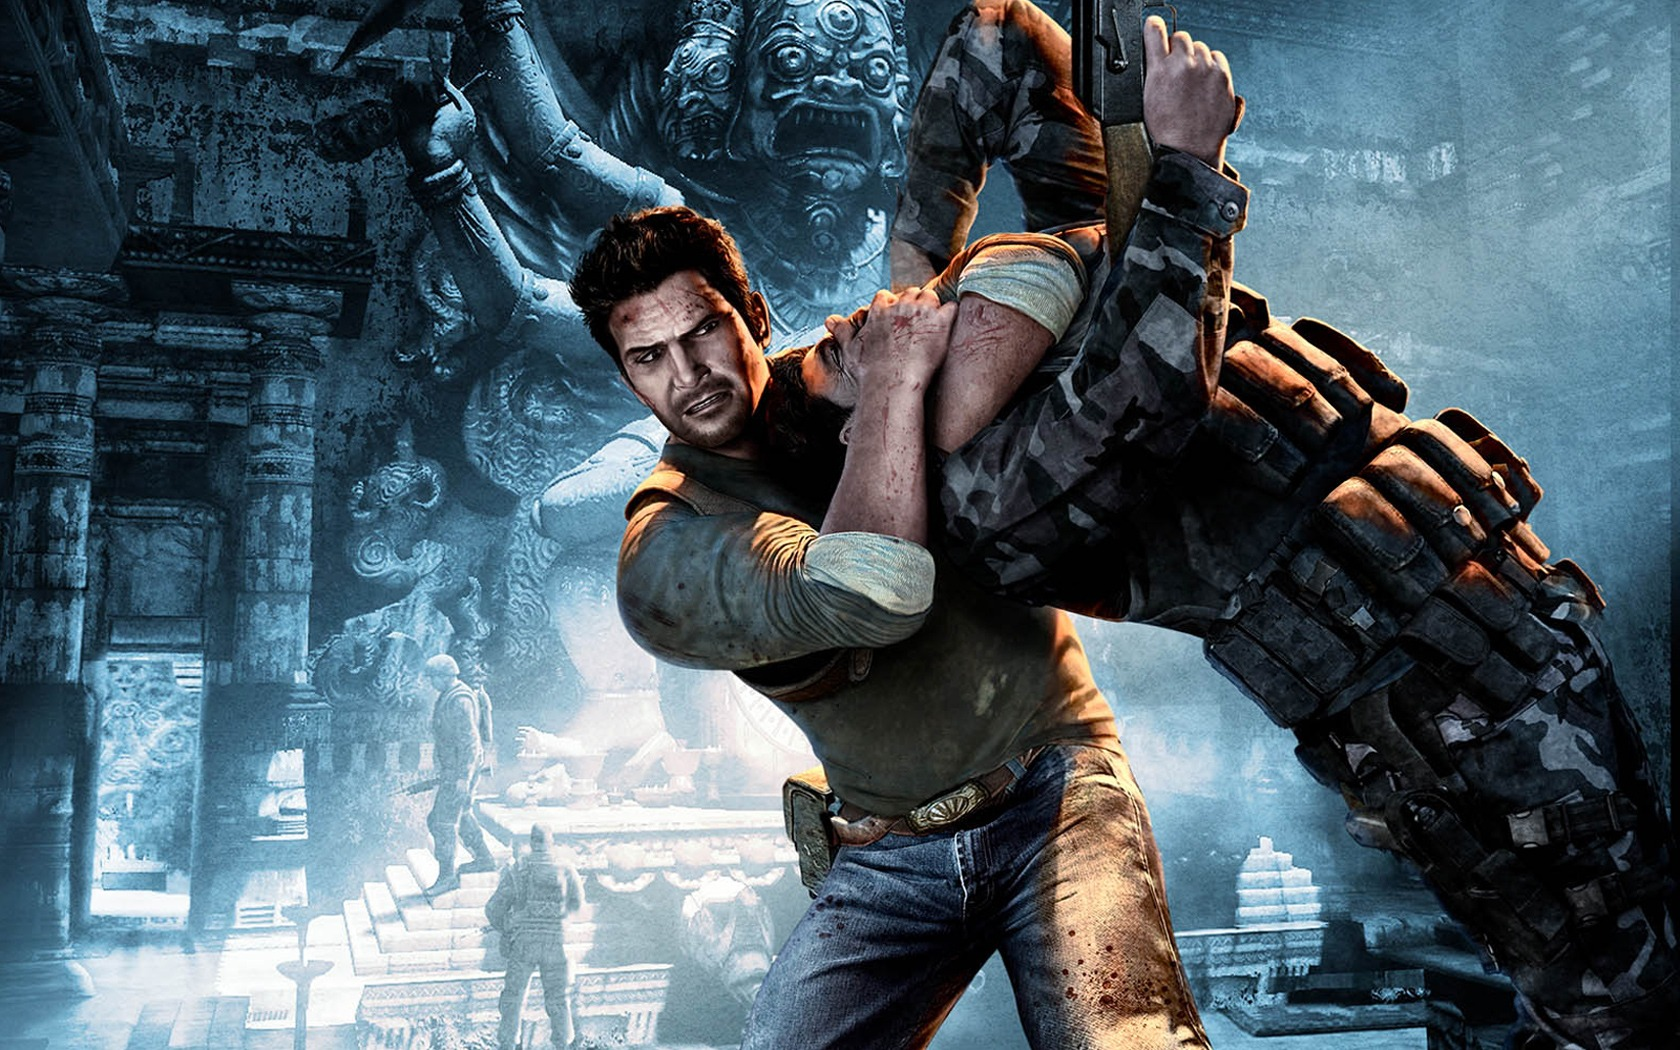 Anime Shooter Girl Wallpaper Super Hd Uncharted 2 Among Thieves Wallpaper Other Games Games